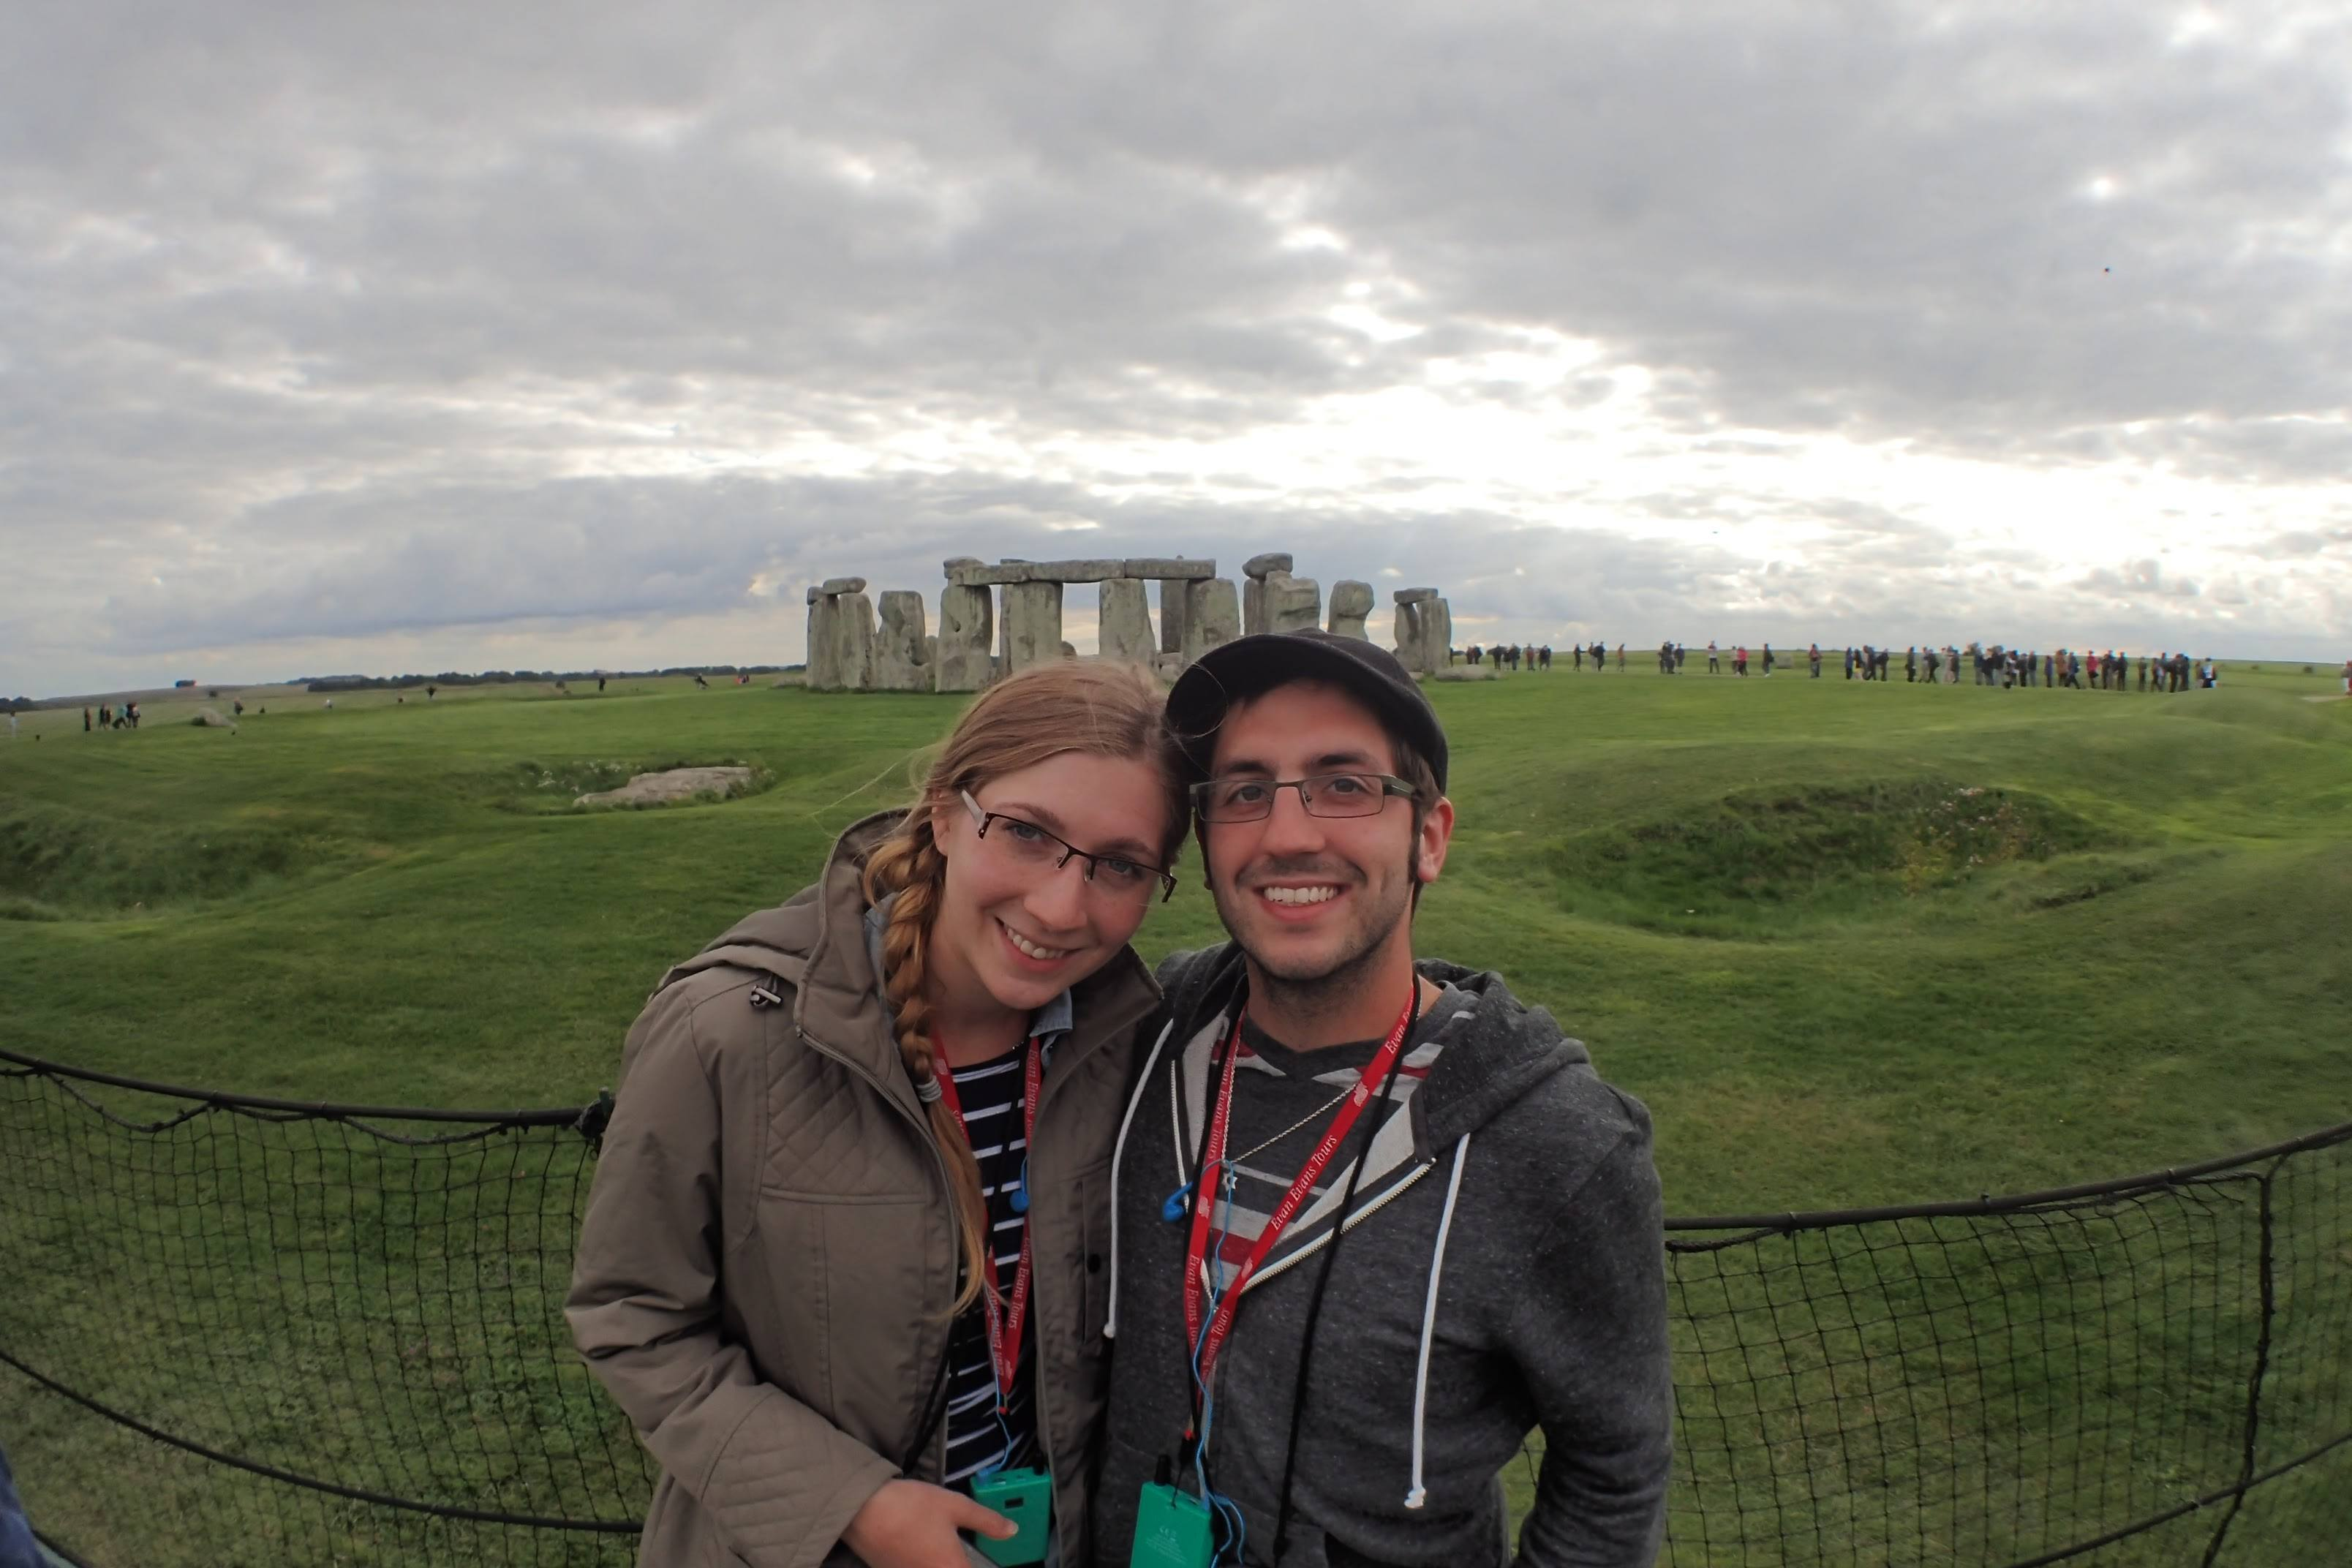 Our trip to Stonehenge